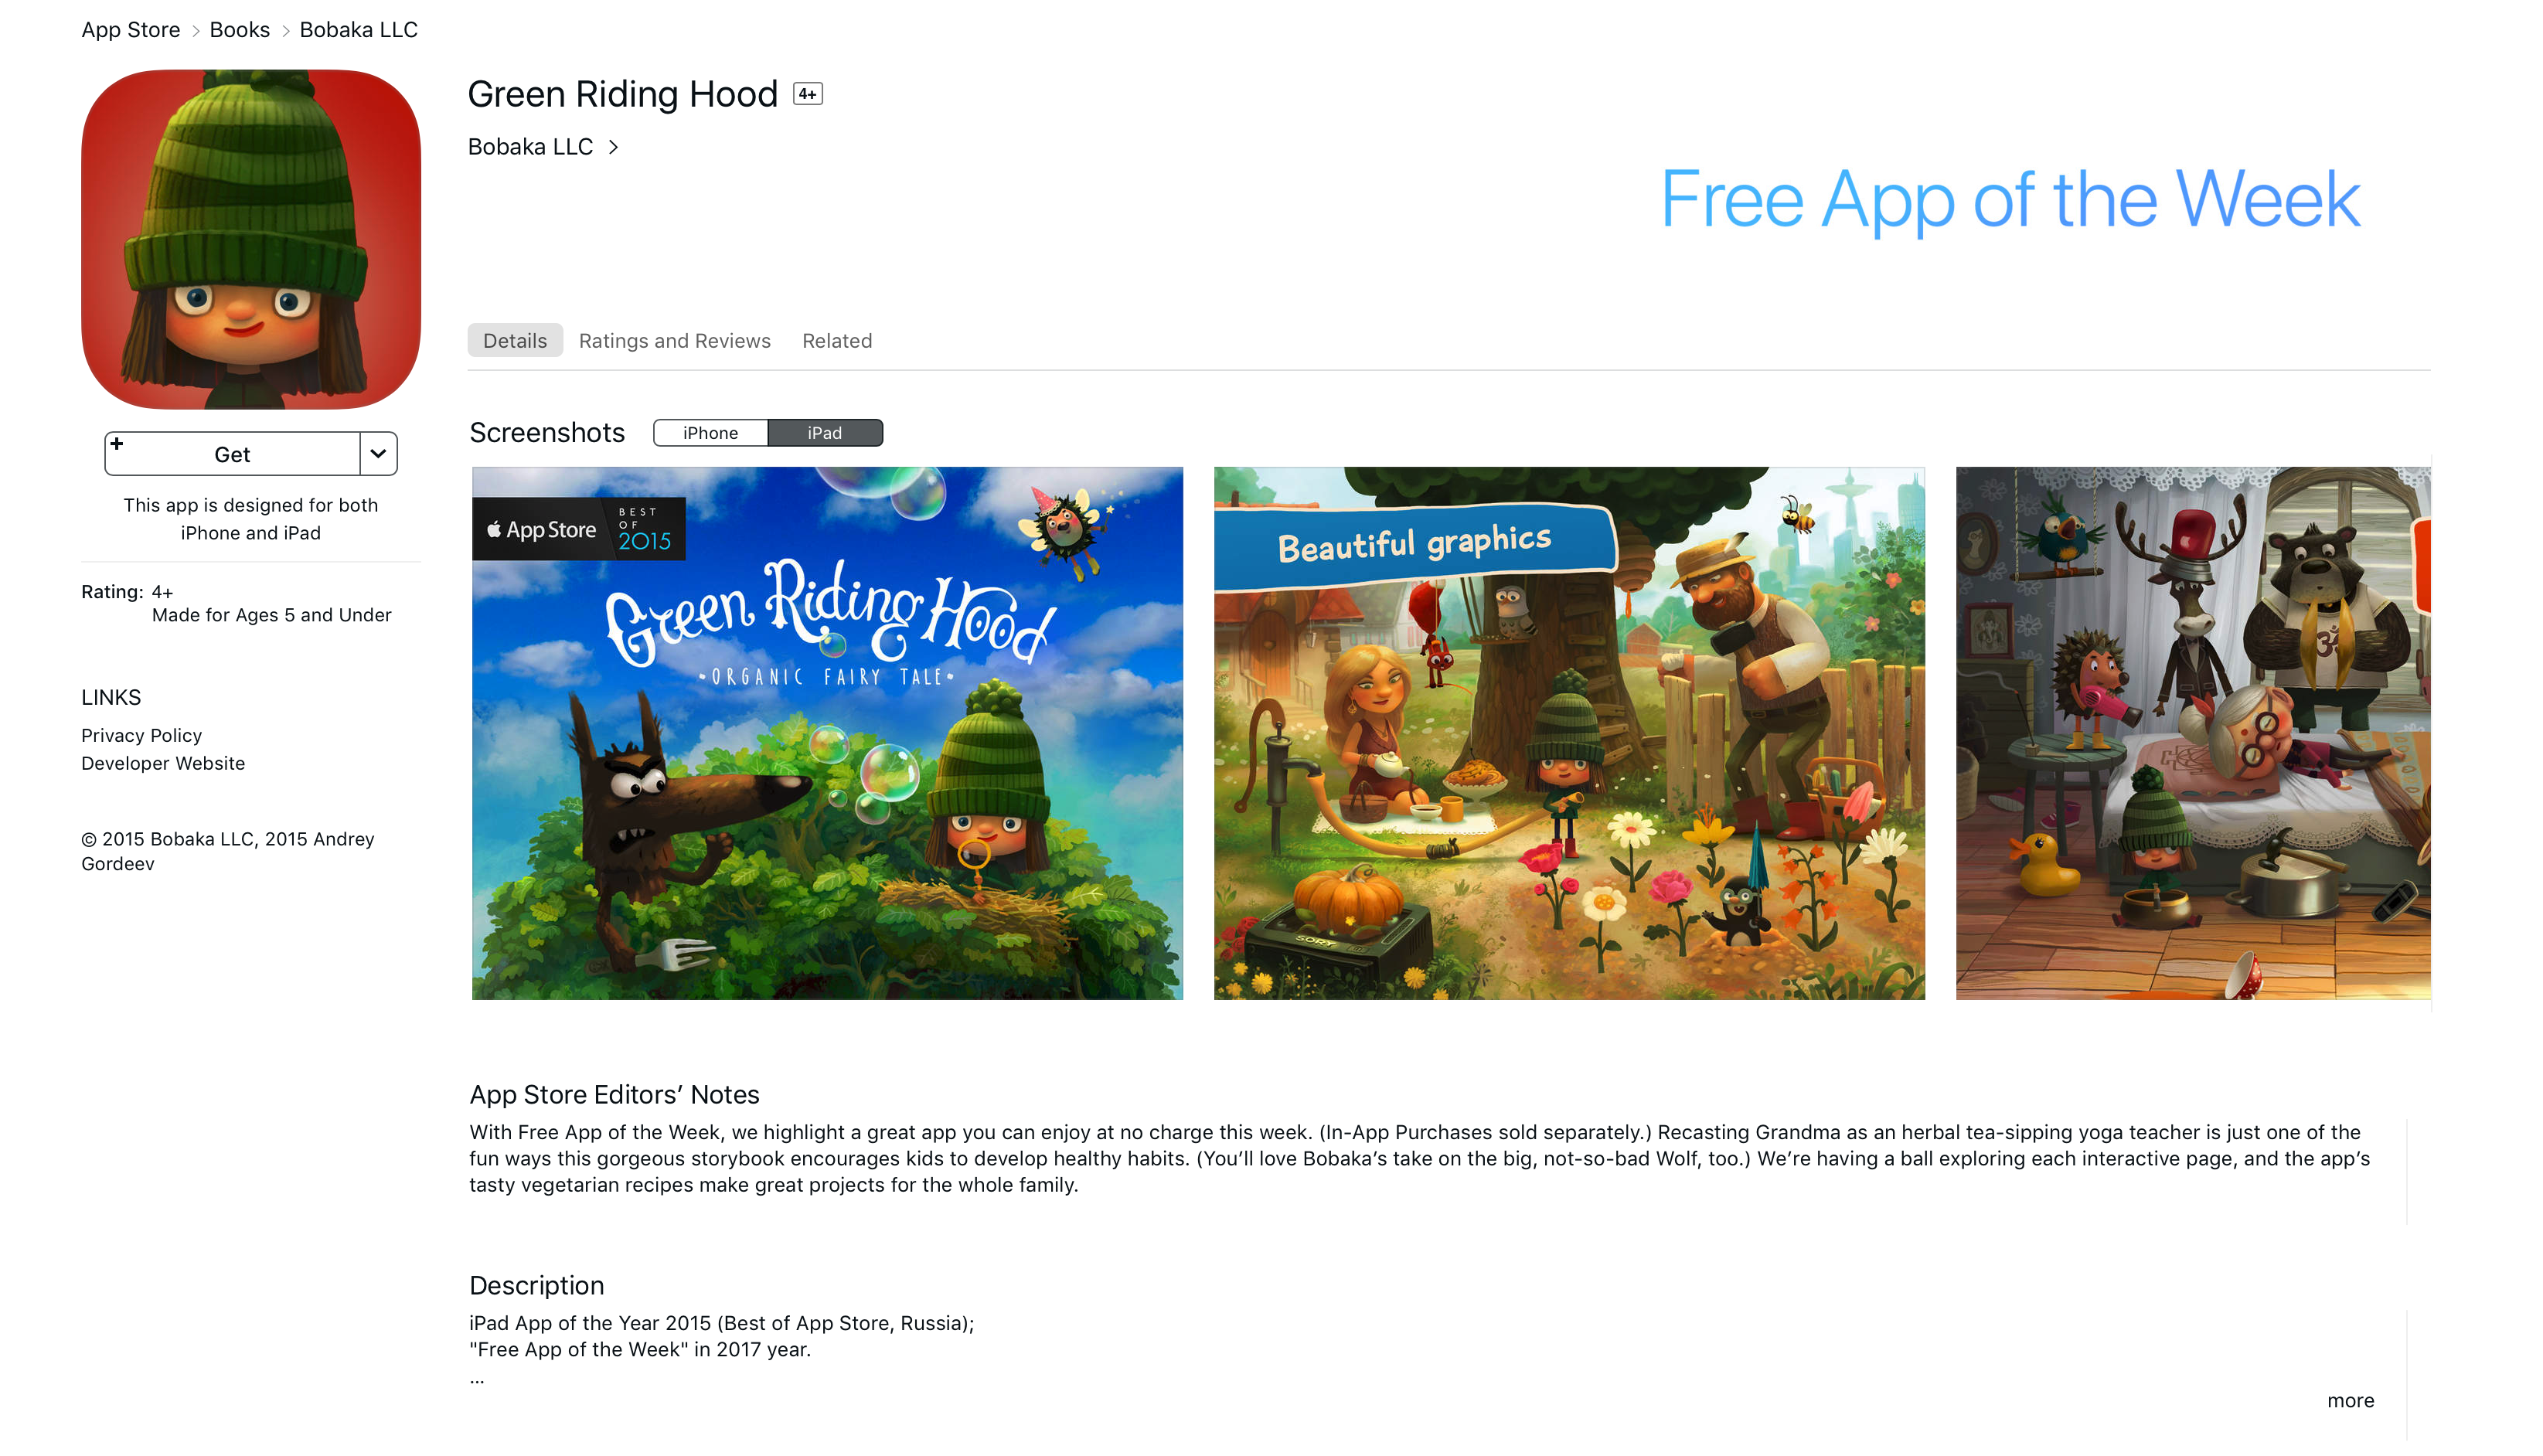 green-riding-hood-app-of-the-week-free-9